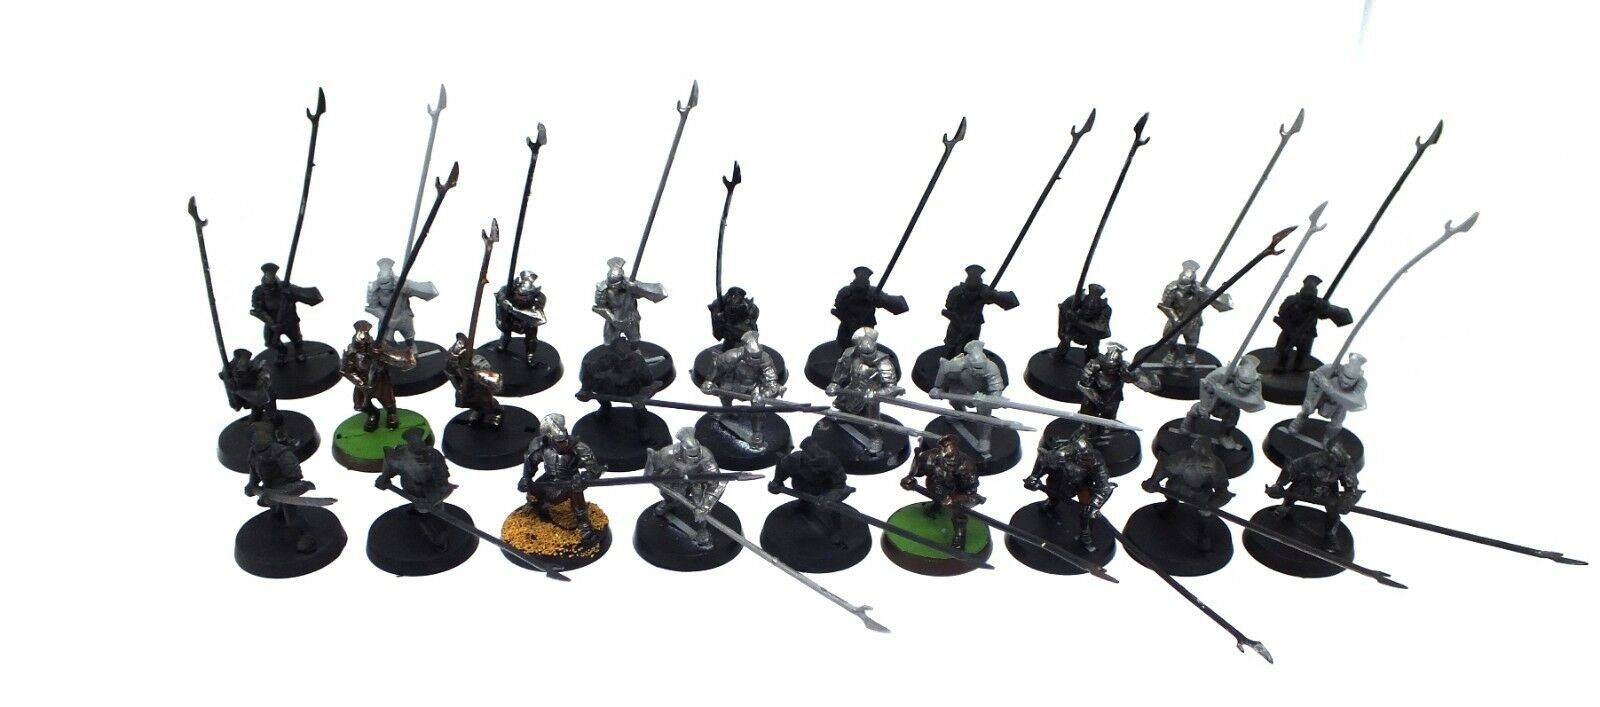 The Lord  of the Rings - Uruk-hai warriors - 28mm (29 pz)  l'ultimo